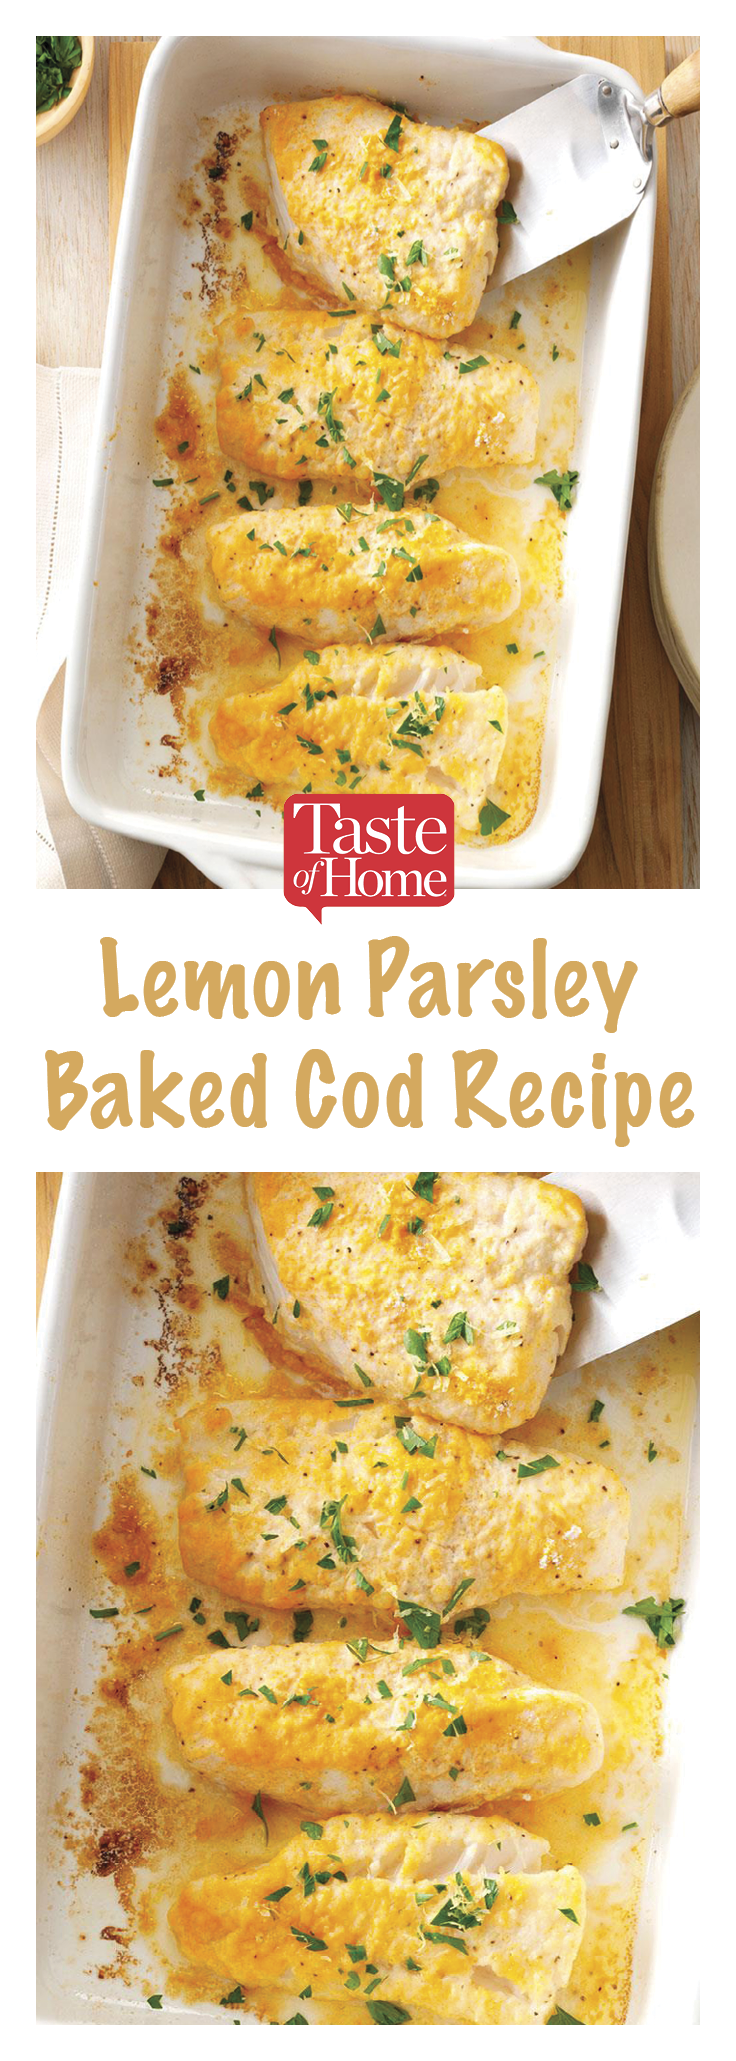 Lemon-Parsley Baked Cod -  Lemon-Parsley Baked Cod  - #baked #cakerecipes #Cod #fishrecipes #lemon #LemonParsley #meatloafrecipes #parsley #smoothierecipes